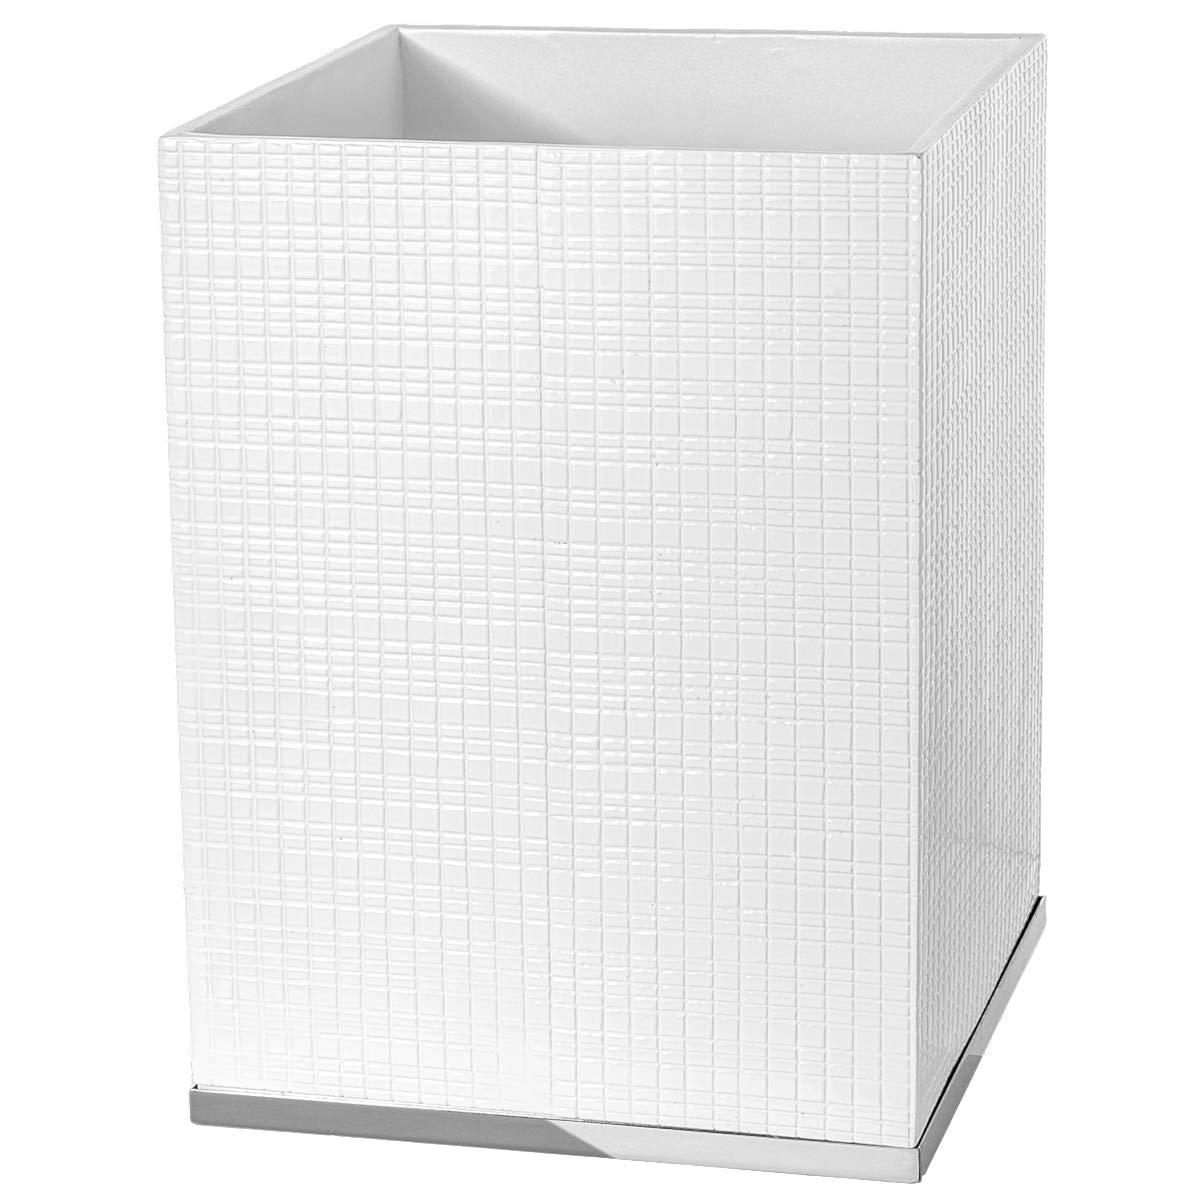 Creative Scents Estella Small White Decorative Bathroom Trash Can - Powder Room Durable Garbage Can Wastebasket Bin for Diaper, Paper, Wips - Space Friendly Bath Waste Basket by Creative Scents